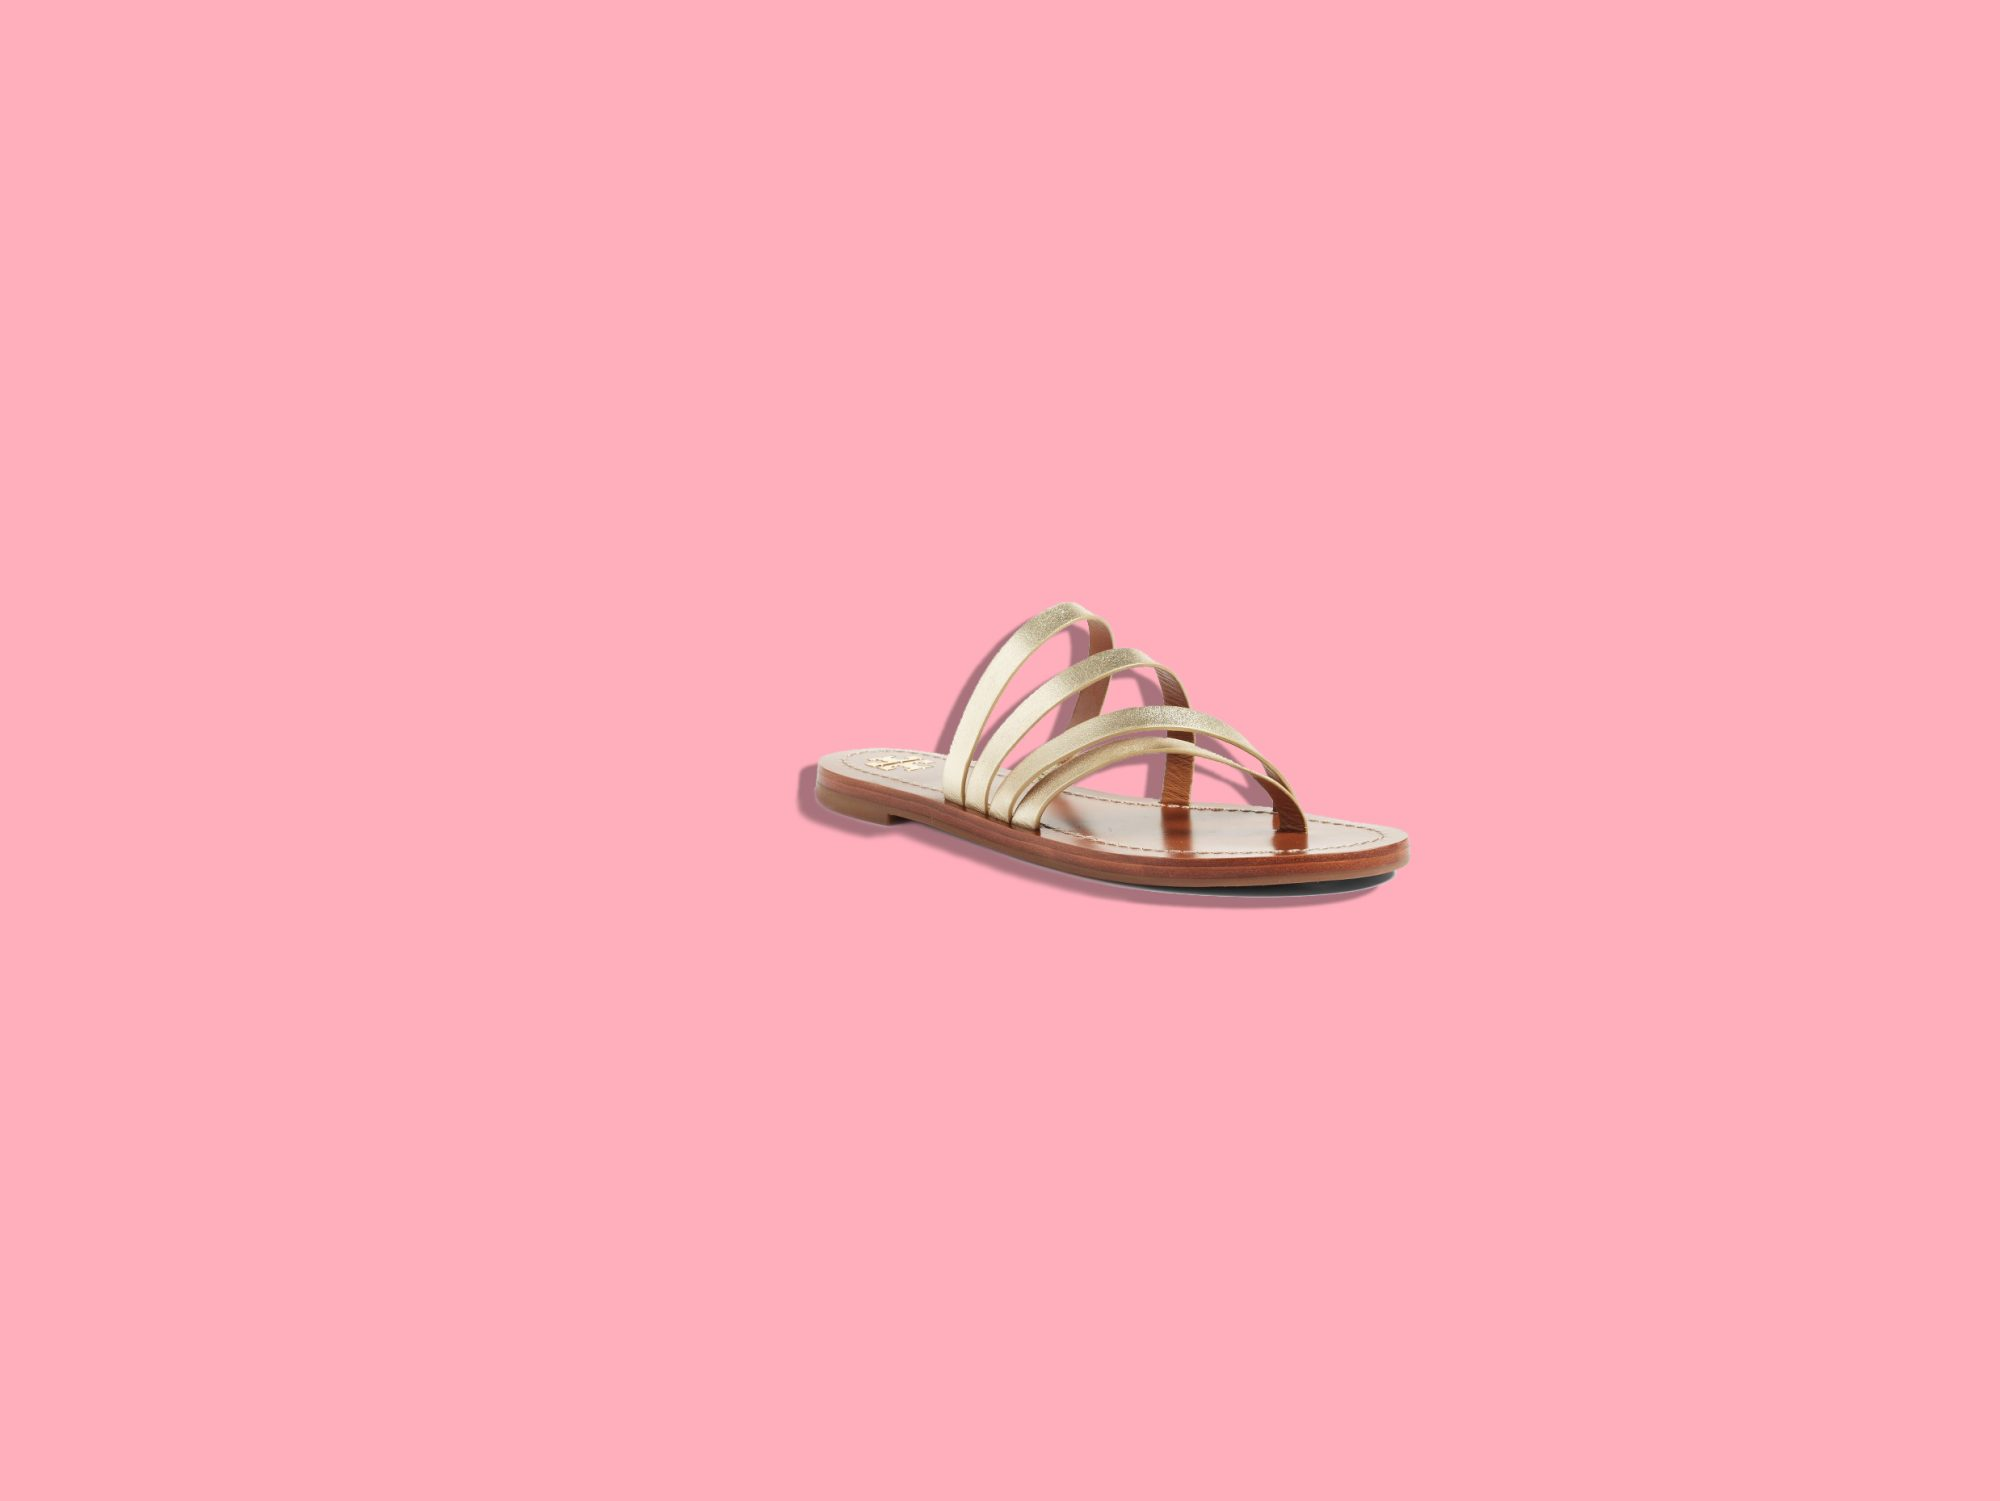 The Best Beach Sandals for Your Next Vacation